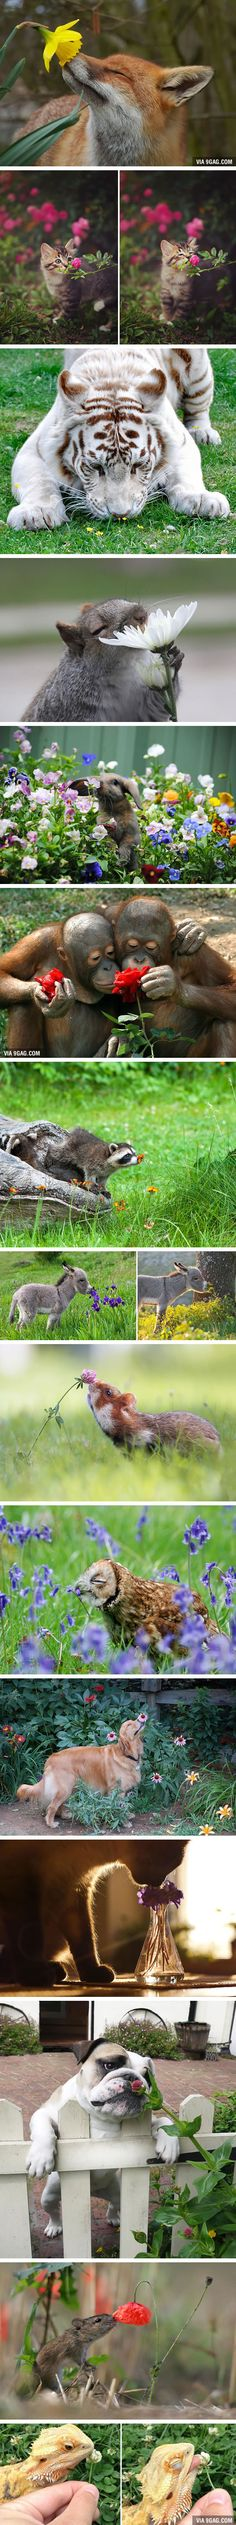 Animals Sniffing Flowers Is The Cutest Thing Ever http://9gag.com/gag/aYeLwQ2?ref=fbp